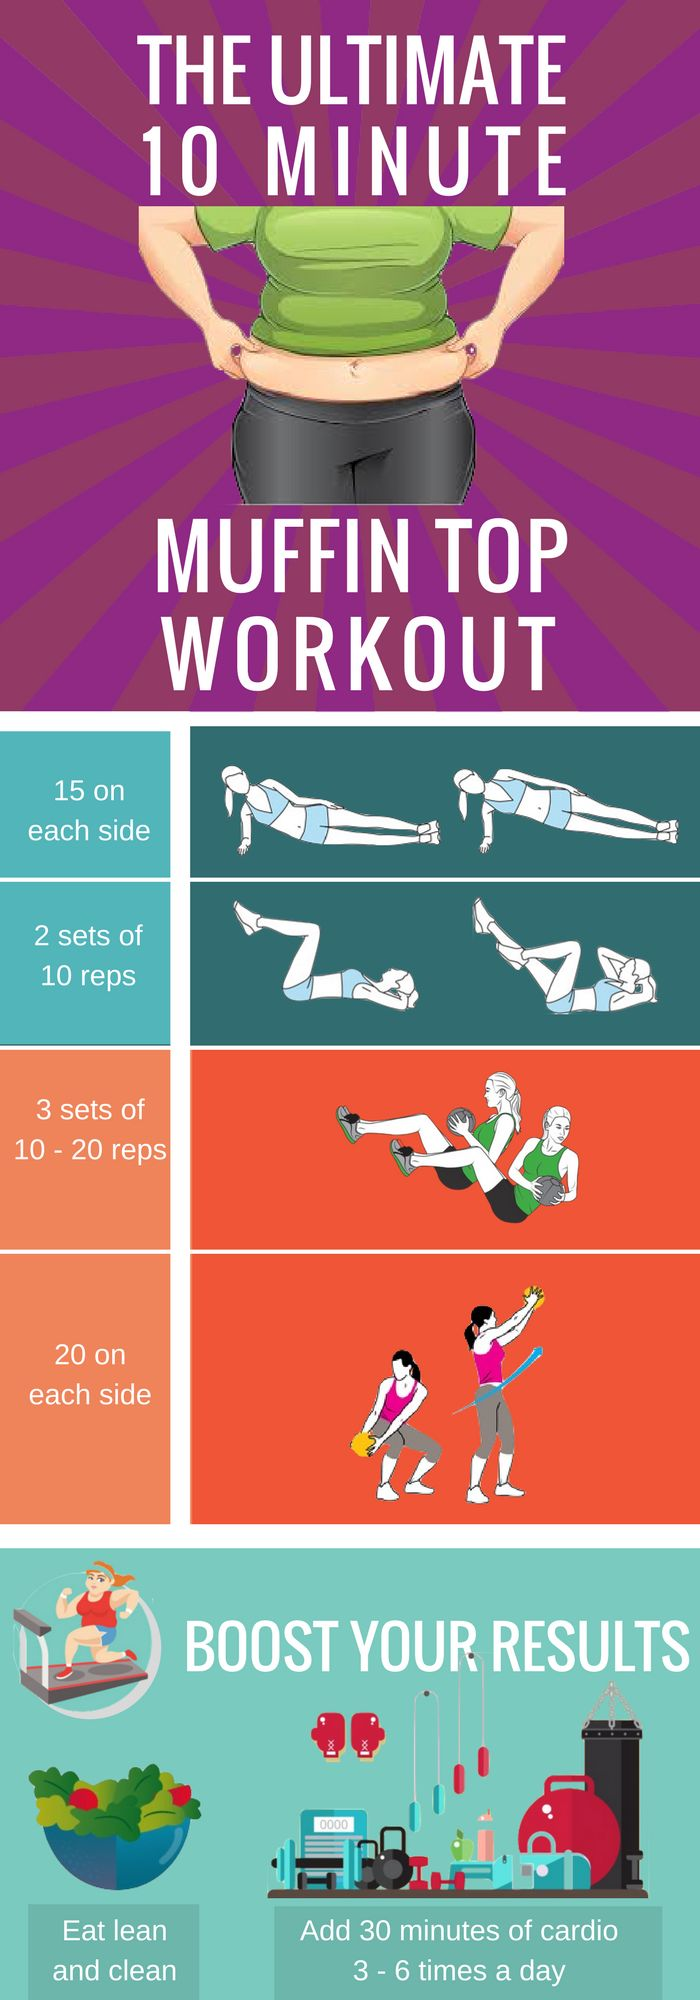 The Ultimate 10-Minute Muffin Top Workout